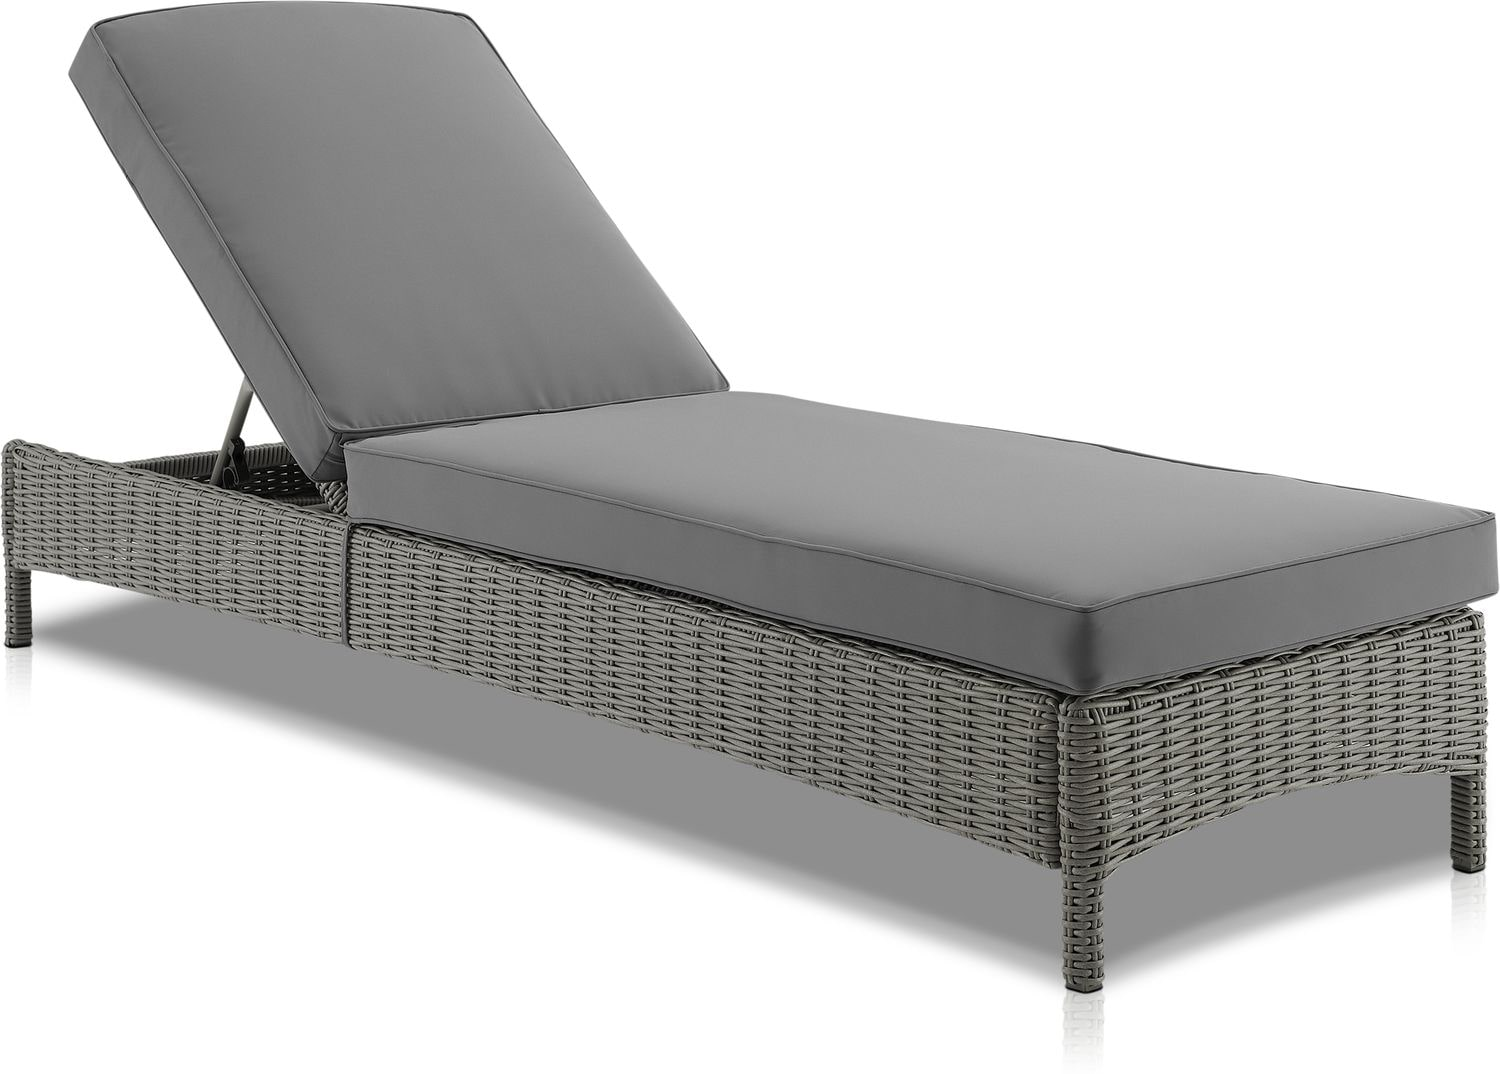 Outdoor Furniture - Destin Outdoor Chaise Lounge